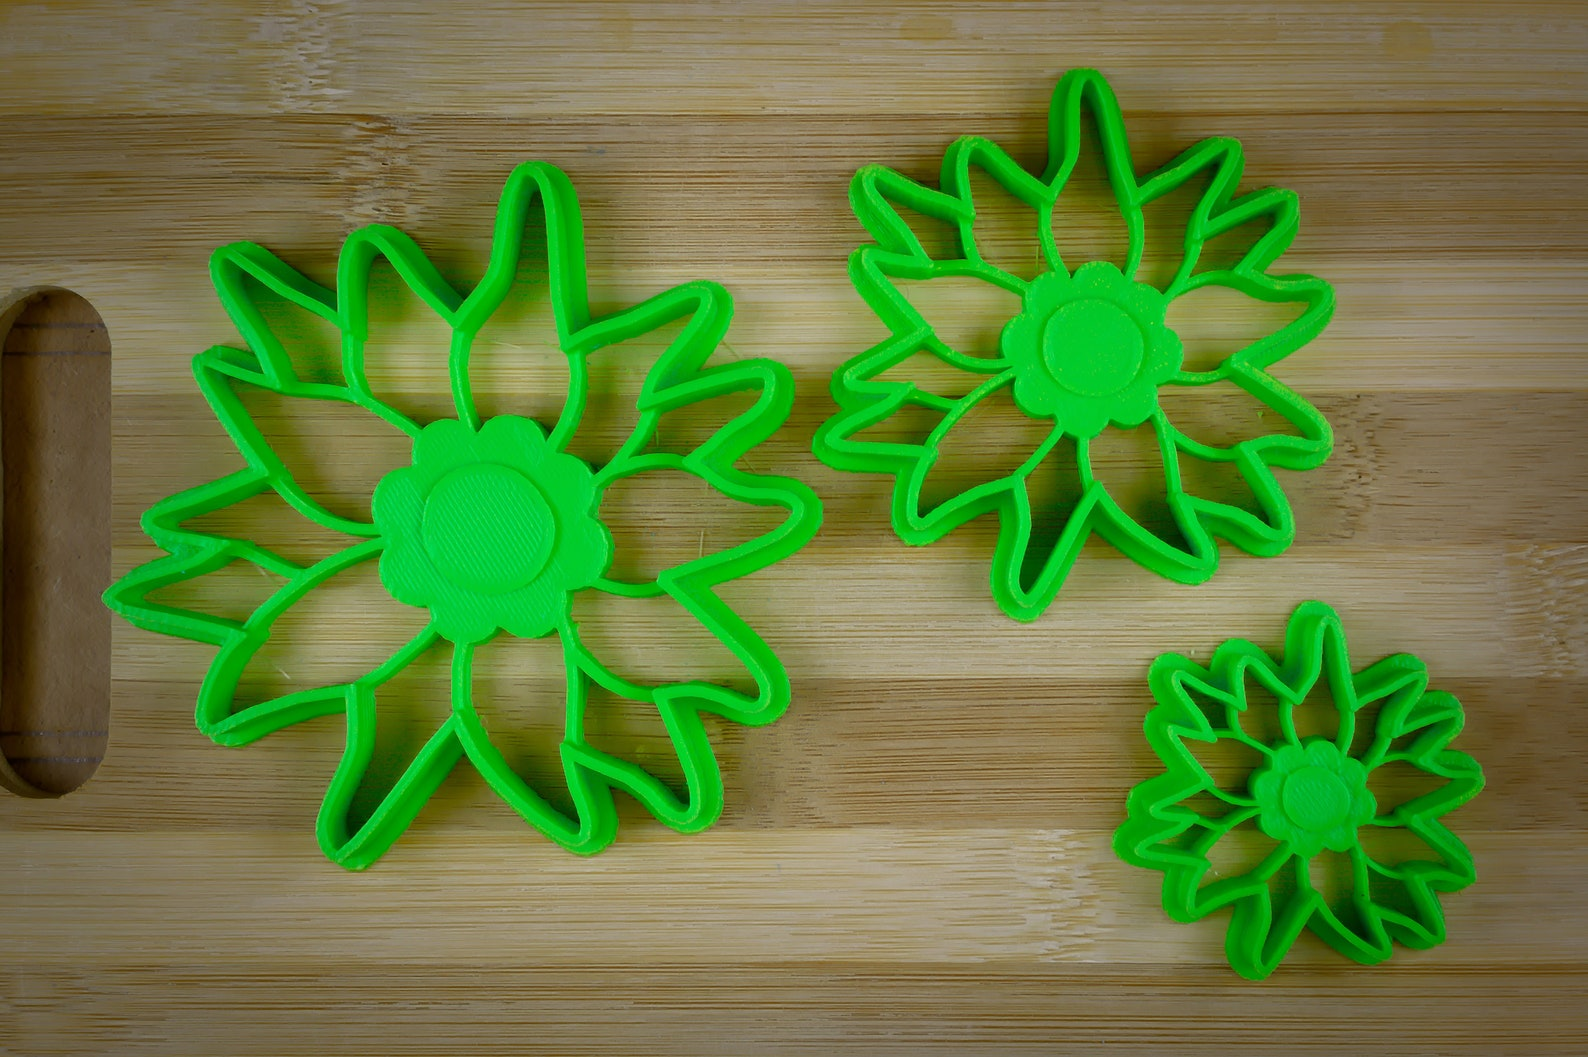 Edelweiss flower - mountain flower - Star of the Alps - Cookie cutter Multi-Size